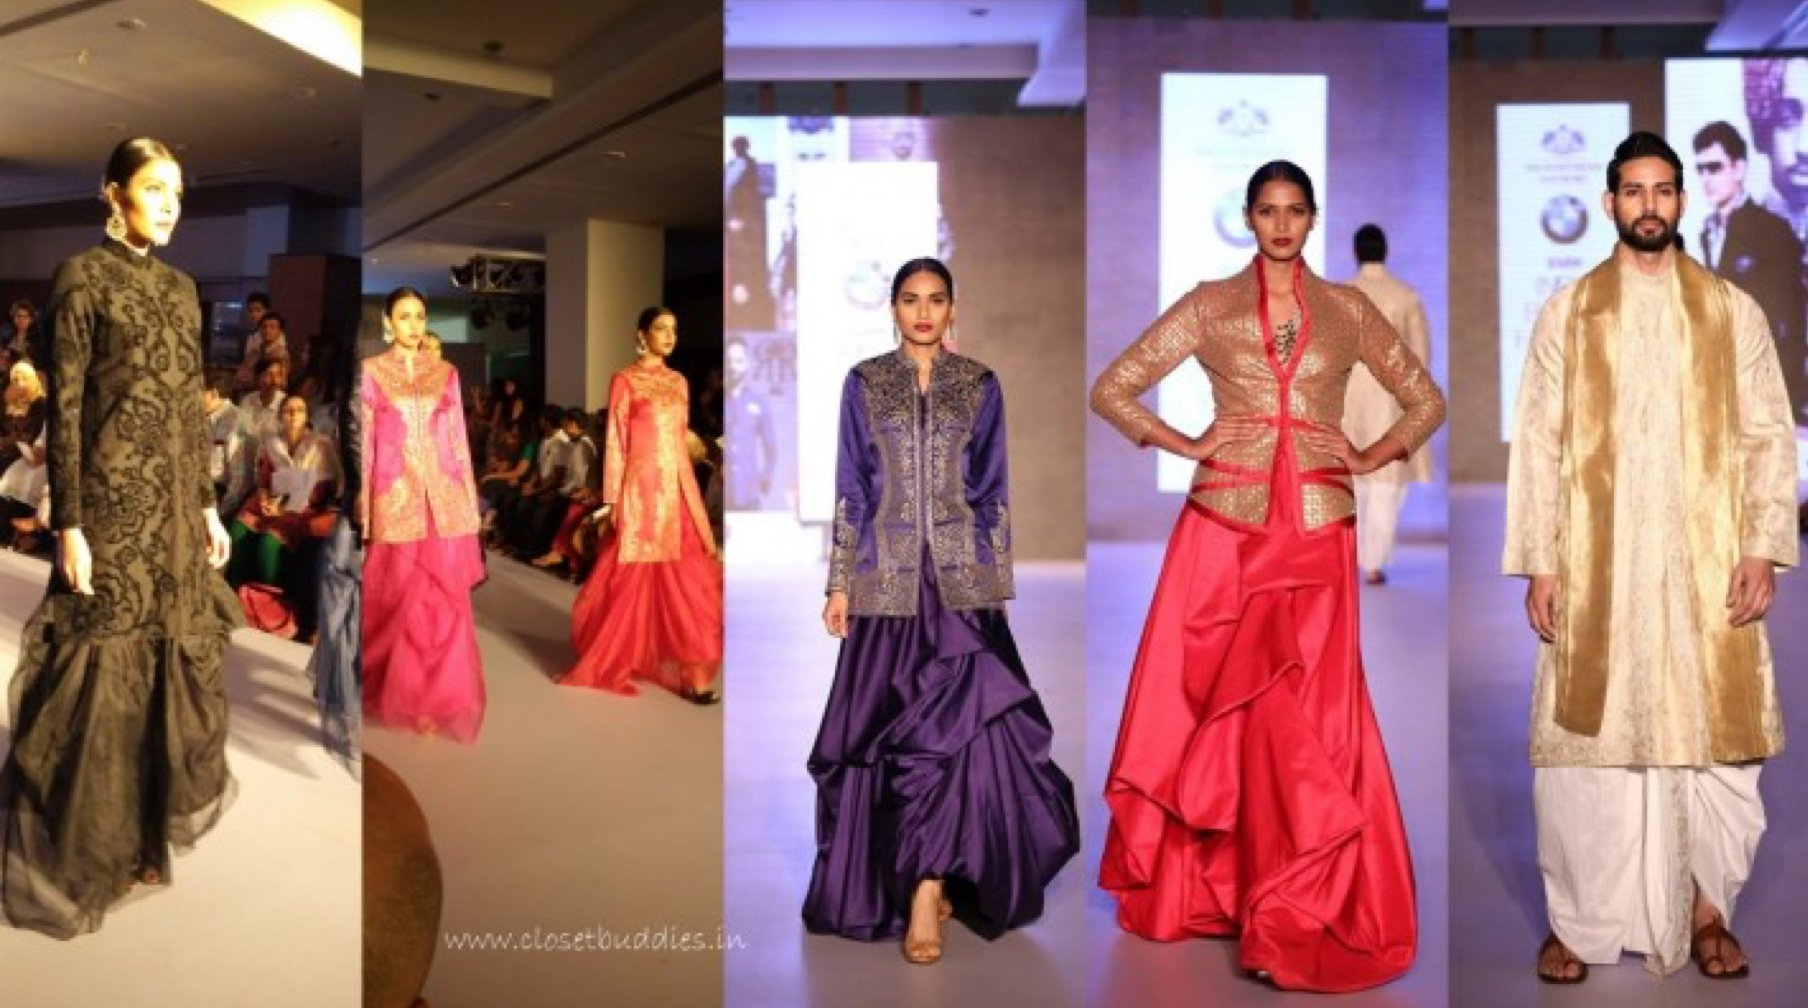 BMW India Bridal Fashion Week @Ahmedabad Raghavendra Rathore - BMW-India Bridal Fashion Week @Ahmedabad- Raghavendra Rathore